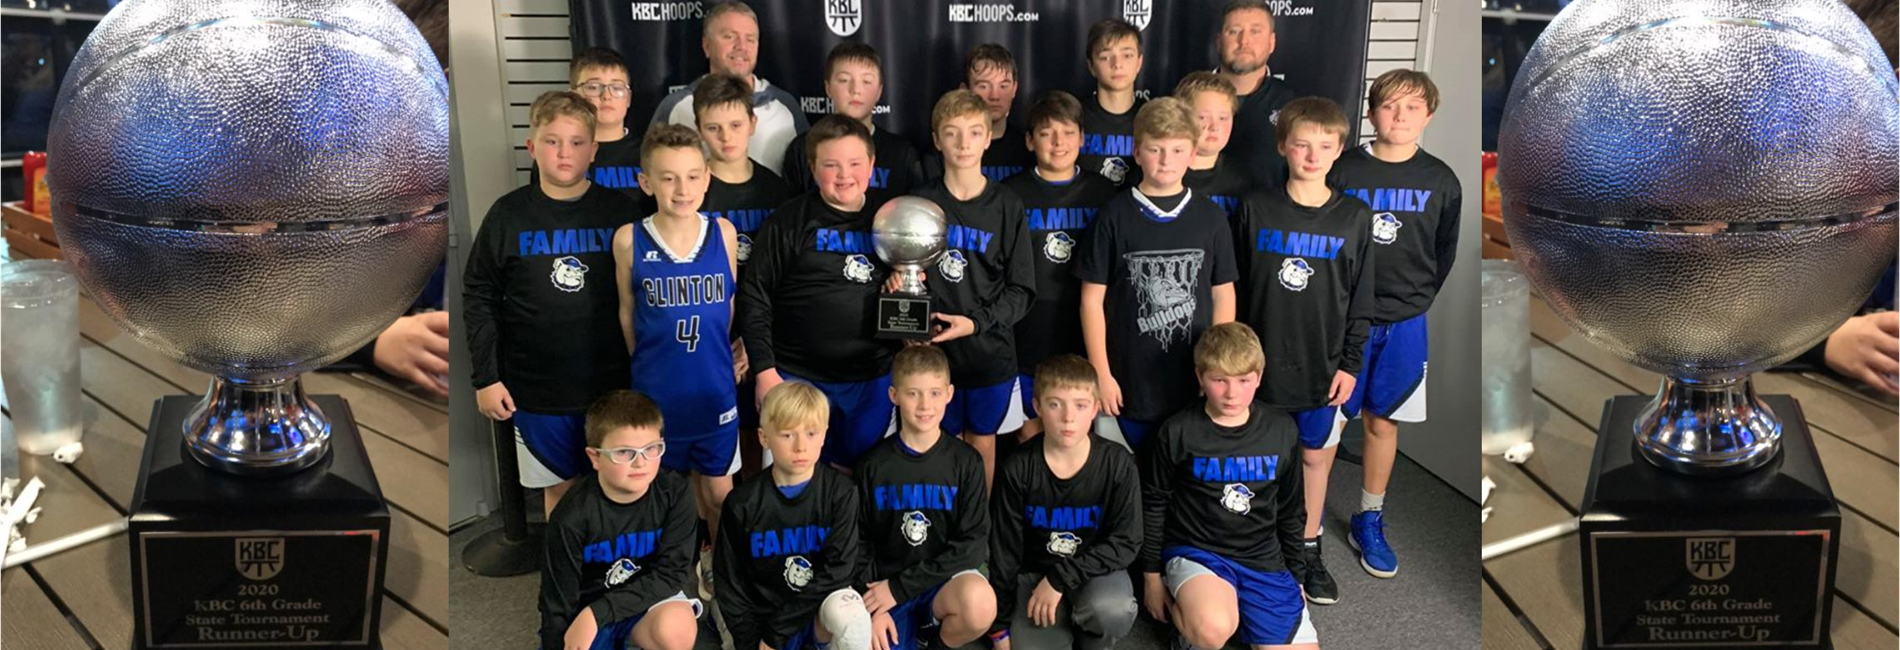 The CCMS 6th Grade Boys Basketball Team was Runner-Up in the KBC State Championship!